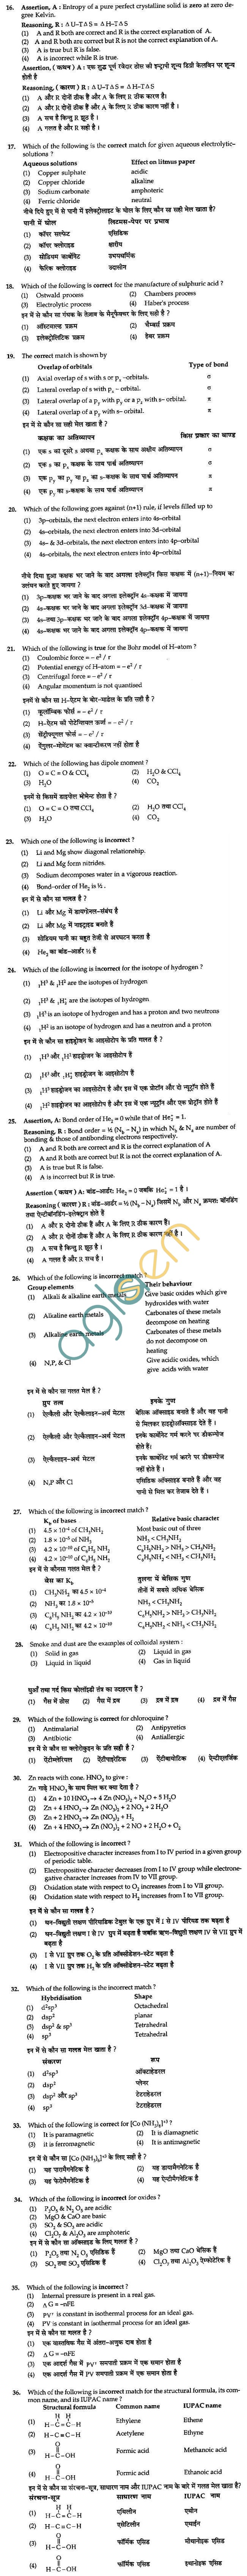 BHU UET 2010 B.Sc. Math Question Paper